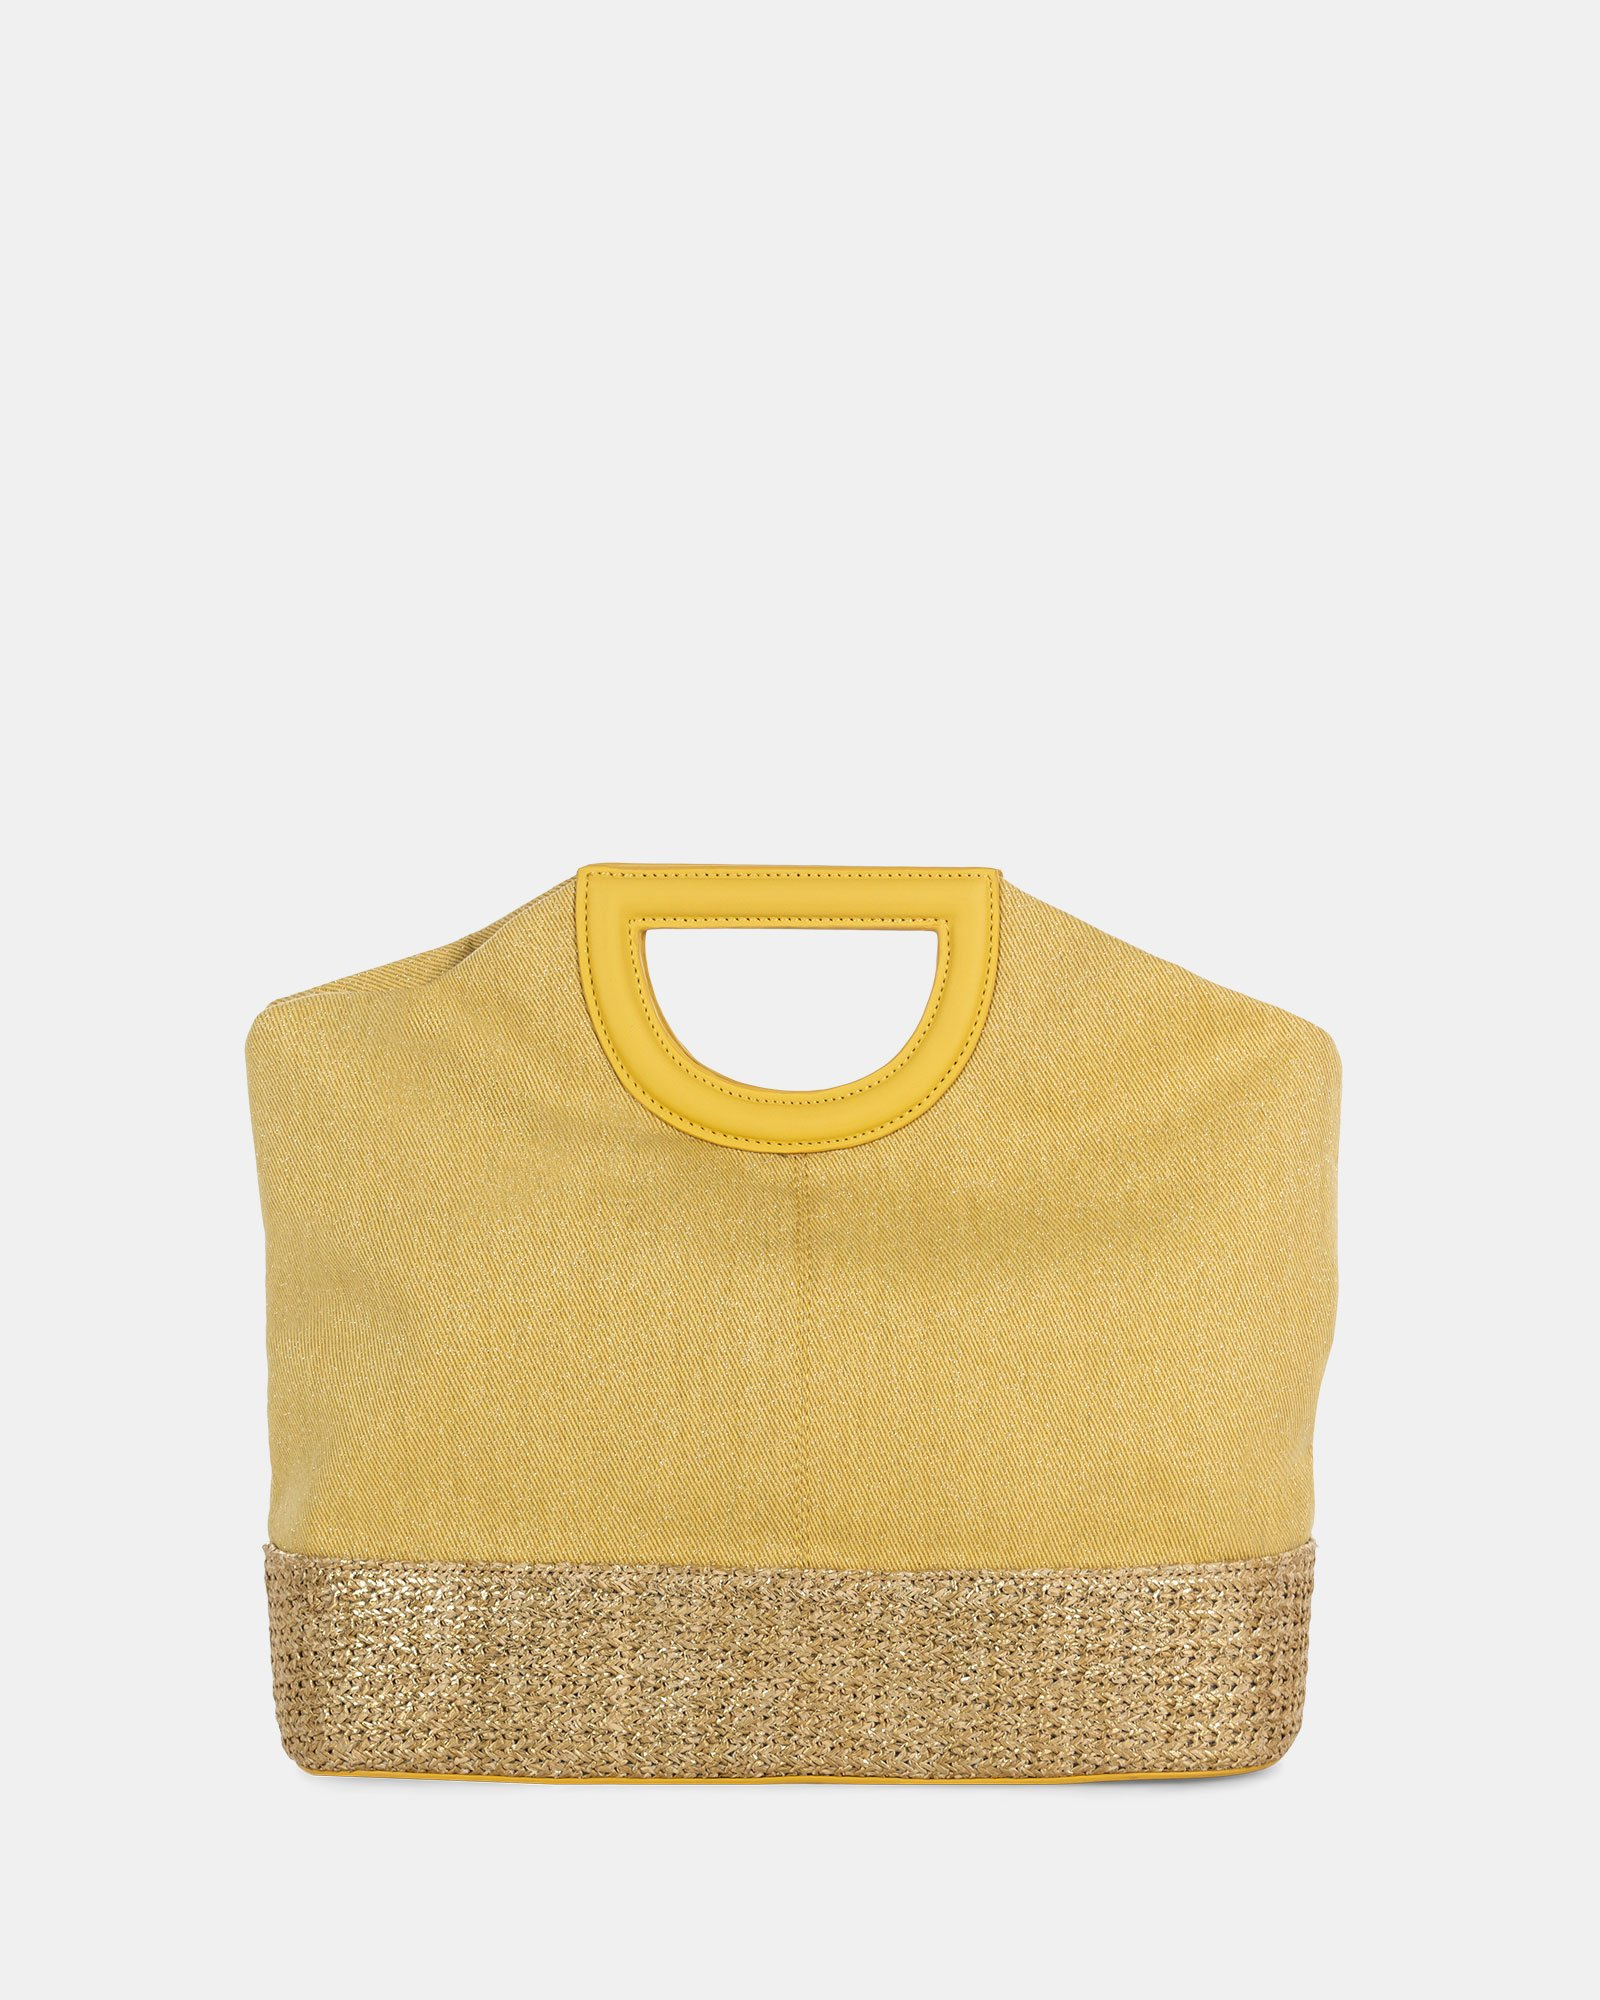 Carita - Handle bag in Canvas & straw trims with Protective baguette feet - yellow - Céline Dion - Zoom